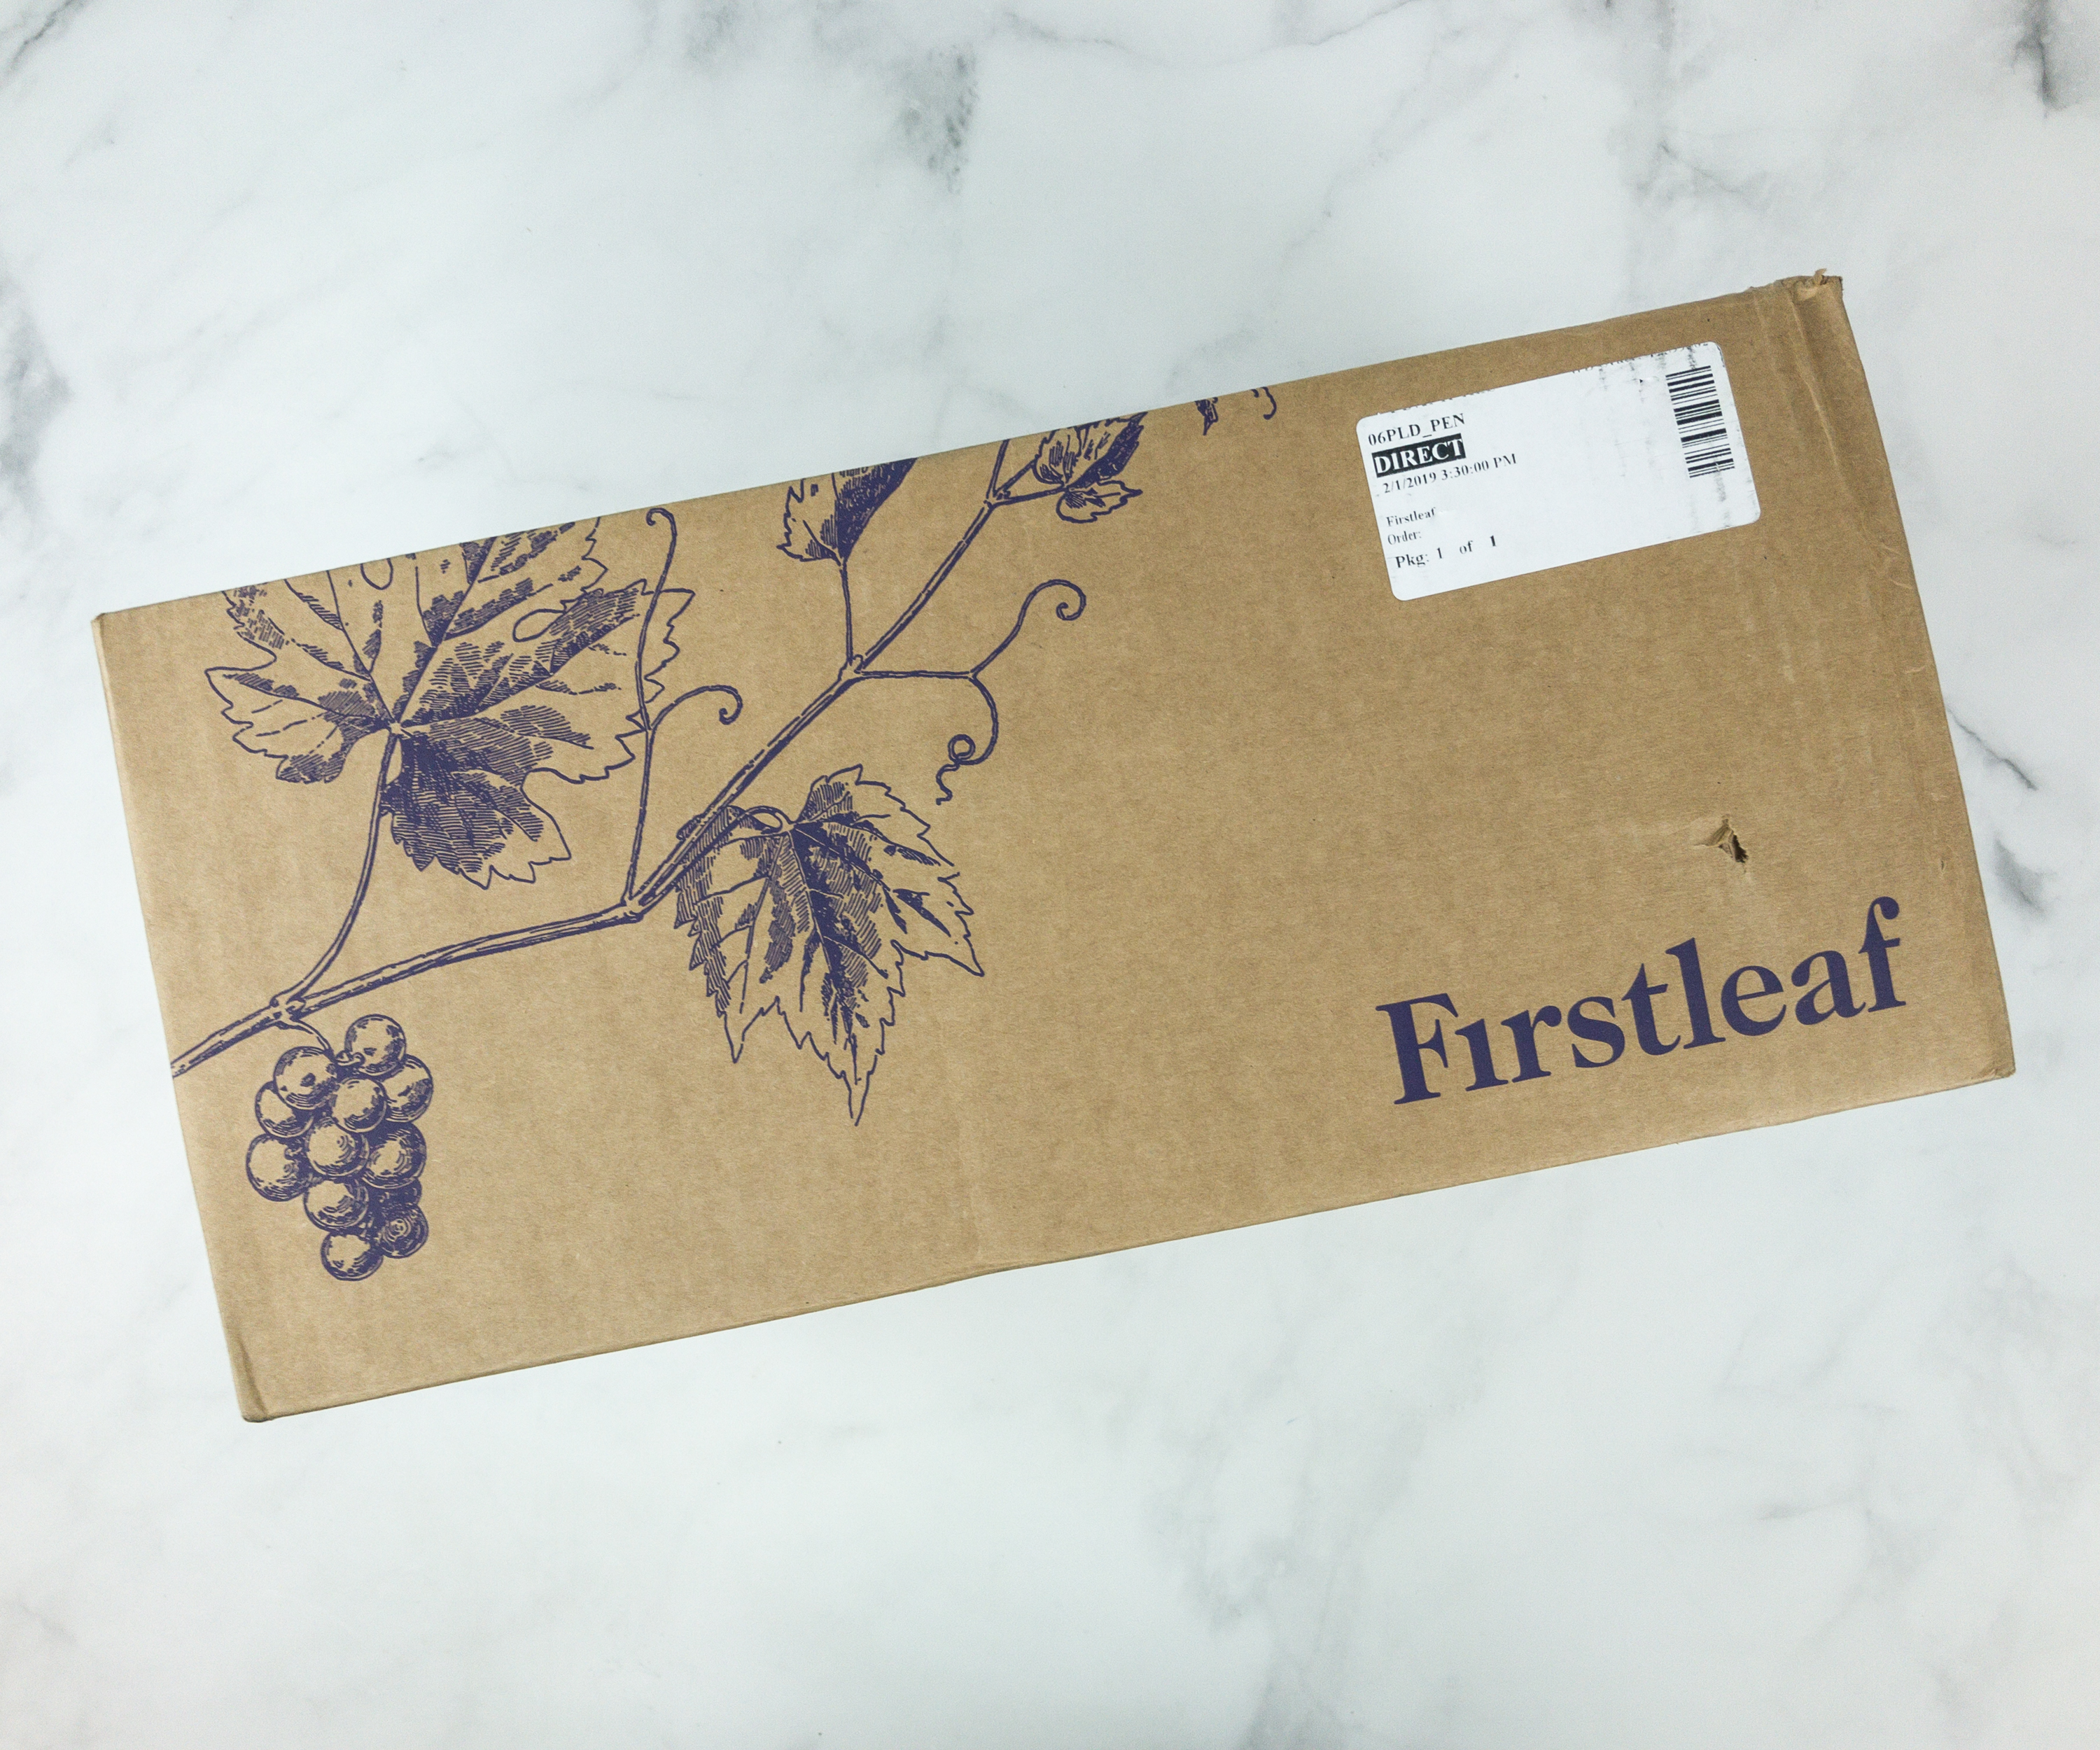 Firstleaf Is A Wine Club Subscription That Aims To Discover Your Exact Preferences And Ship You Member S First Shipment Will Be An